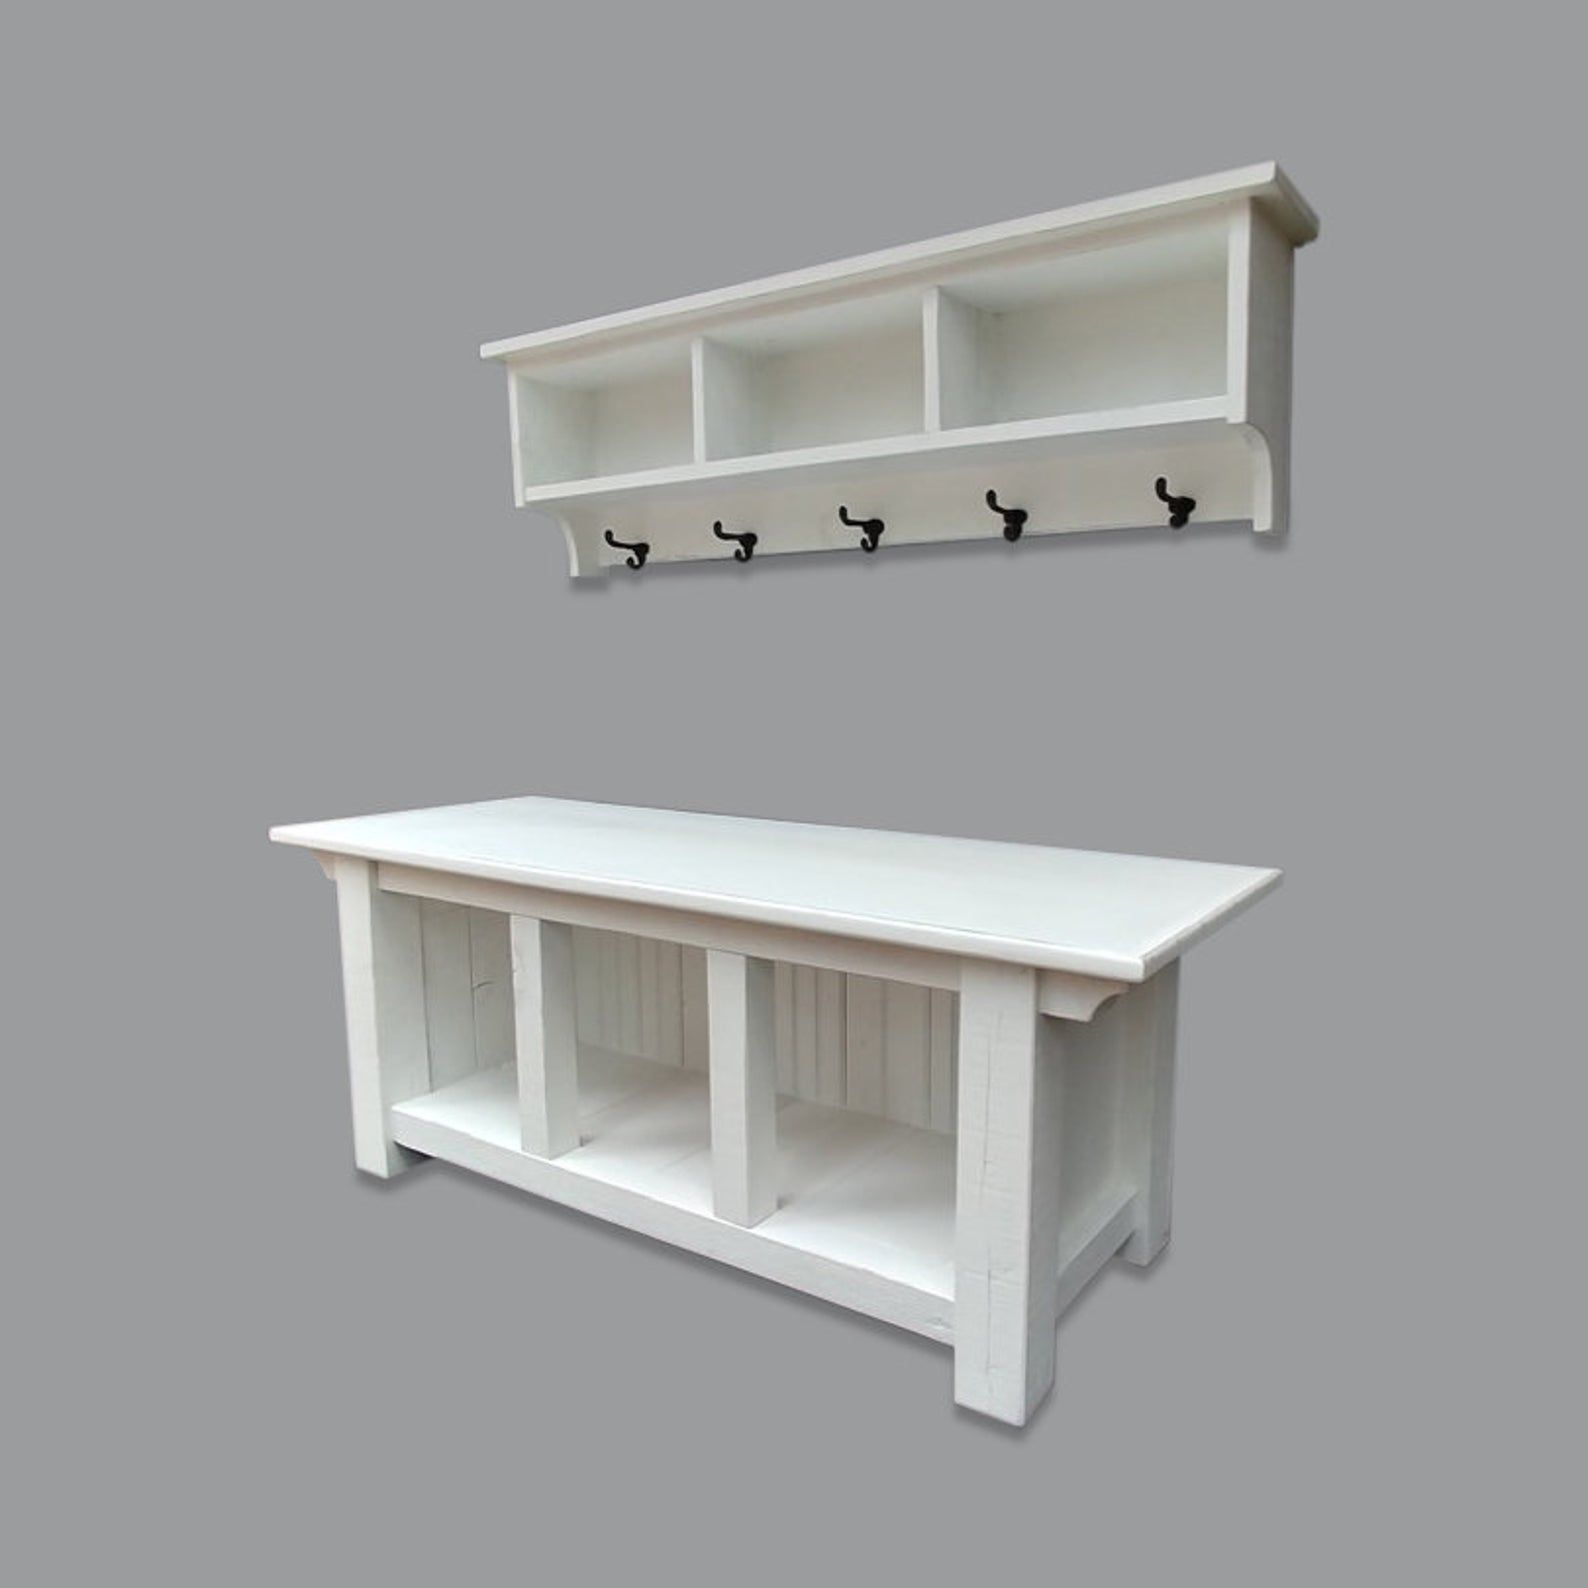 Farmhouse Cubby Storage Bench And Shelf Cubby Coat Rack Set White In 2020 Cubby Storage Bench Storage Bench Cubby Storage